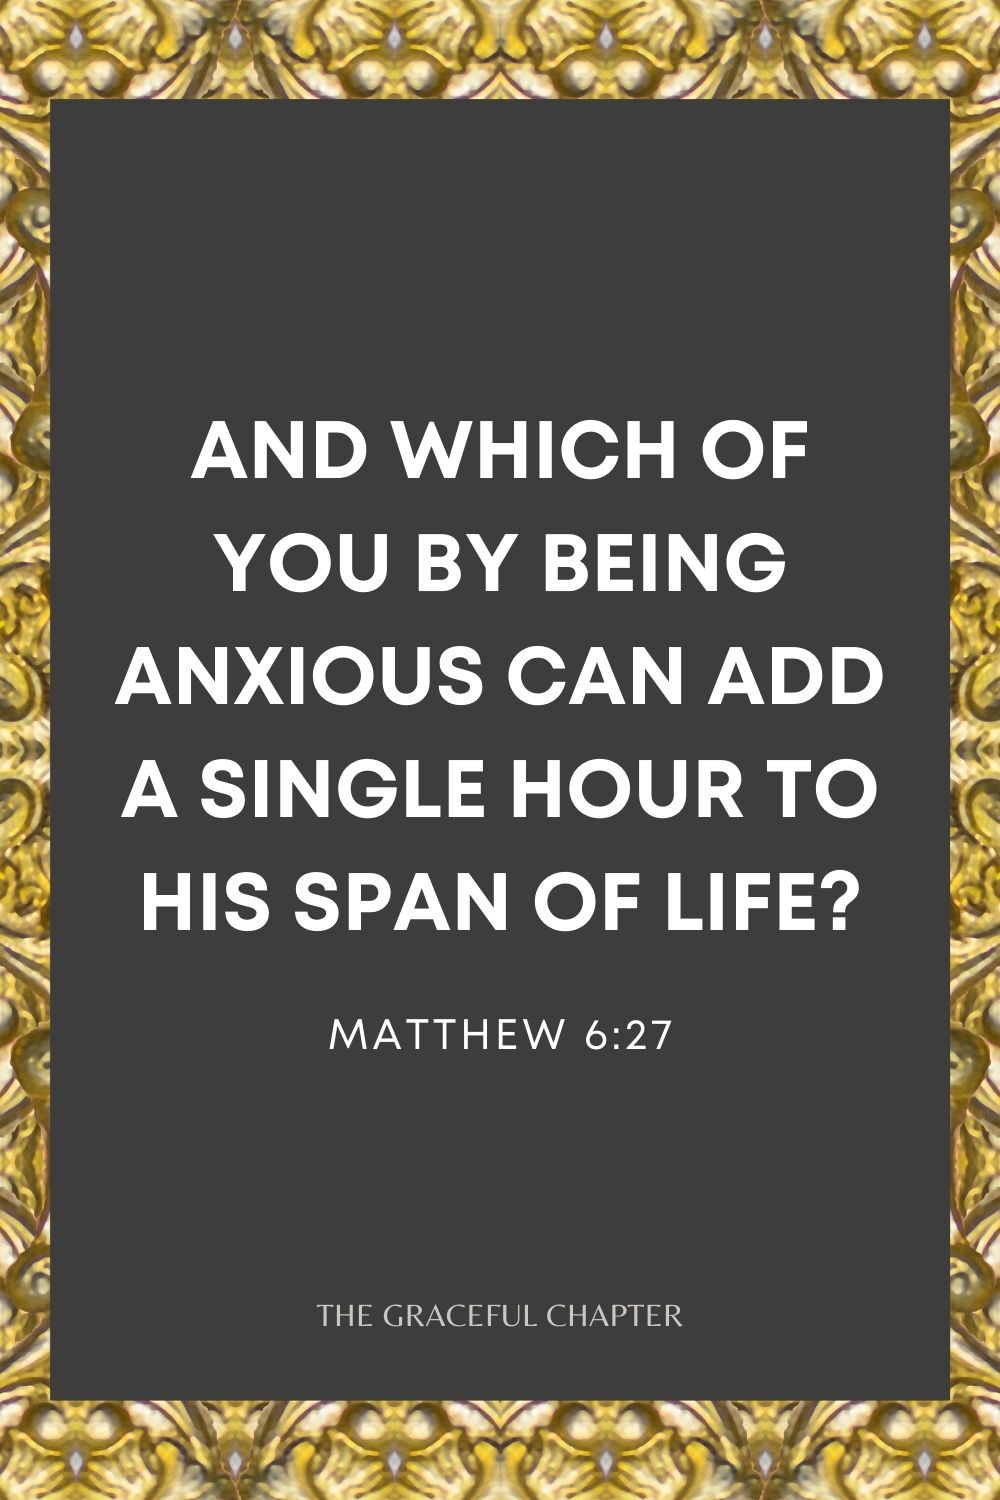 And which of you by being anxious can add a single hour to his span of life? Matthew 6:27